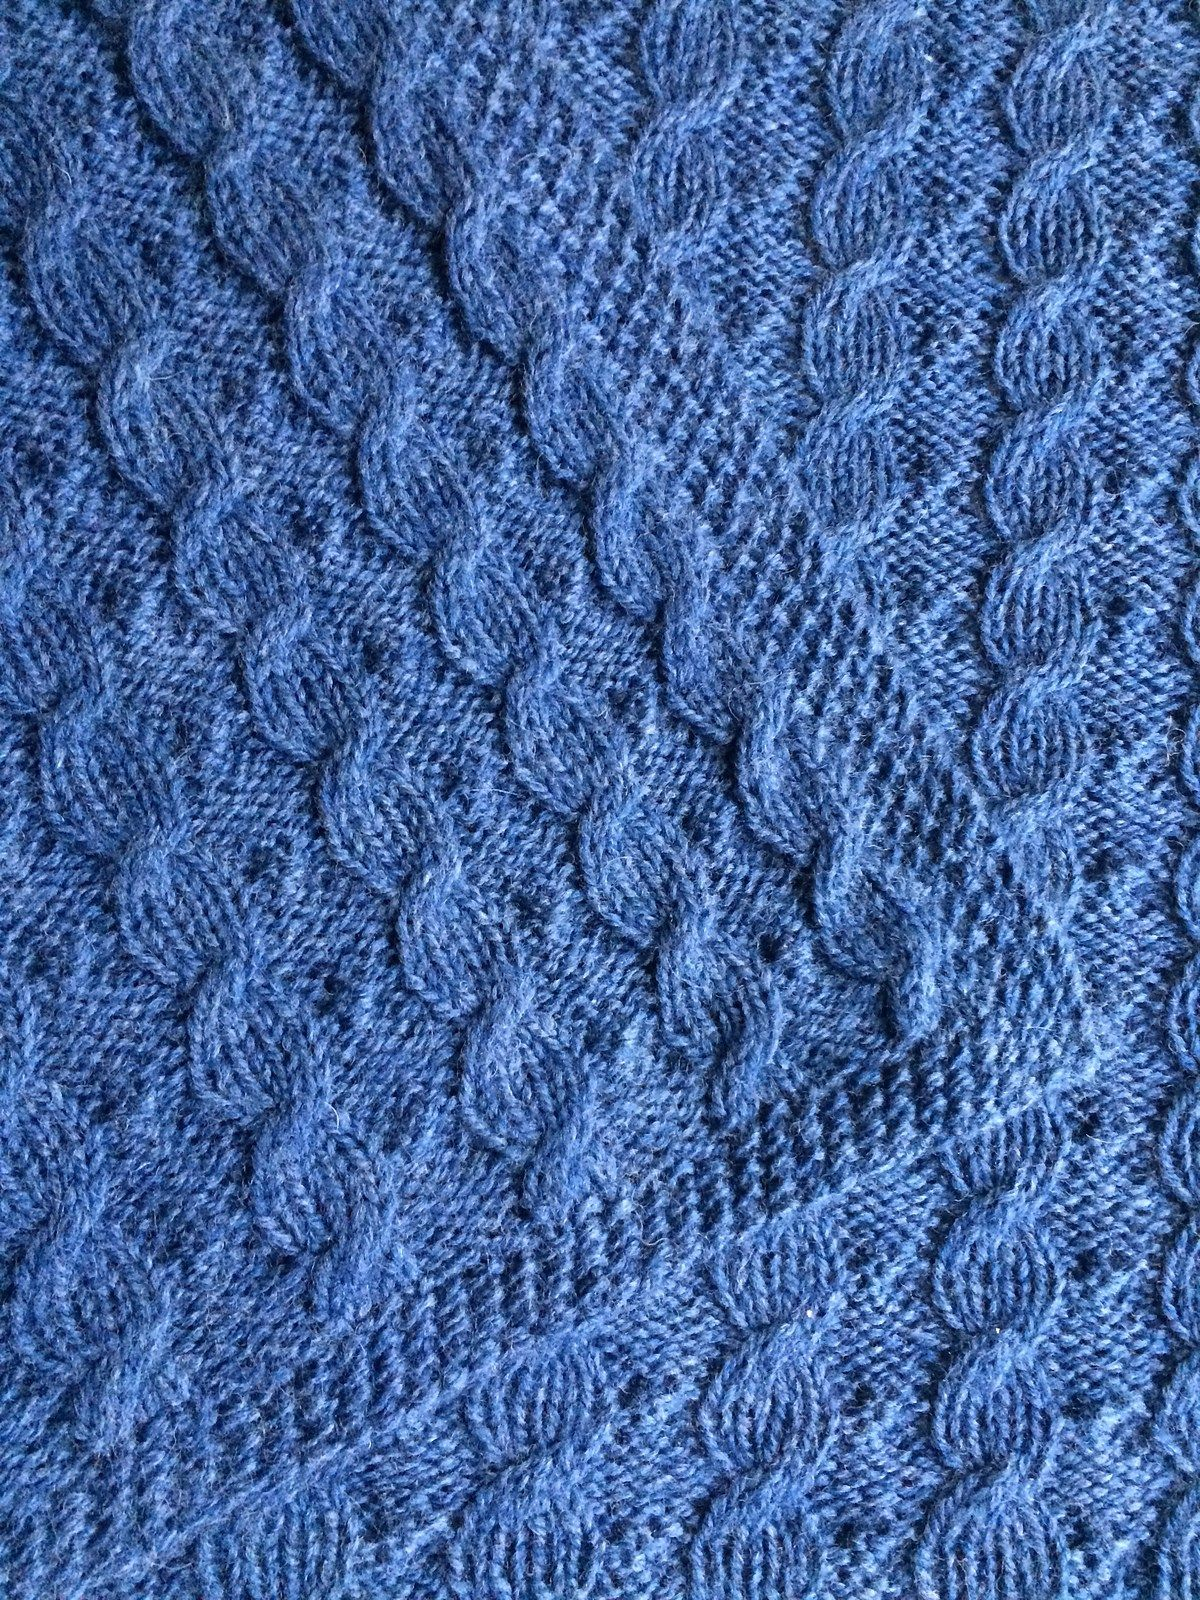 Reversible Cable Knitting Patterns | Knitting patterns, Cable and ...